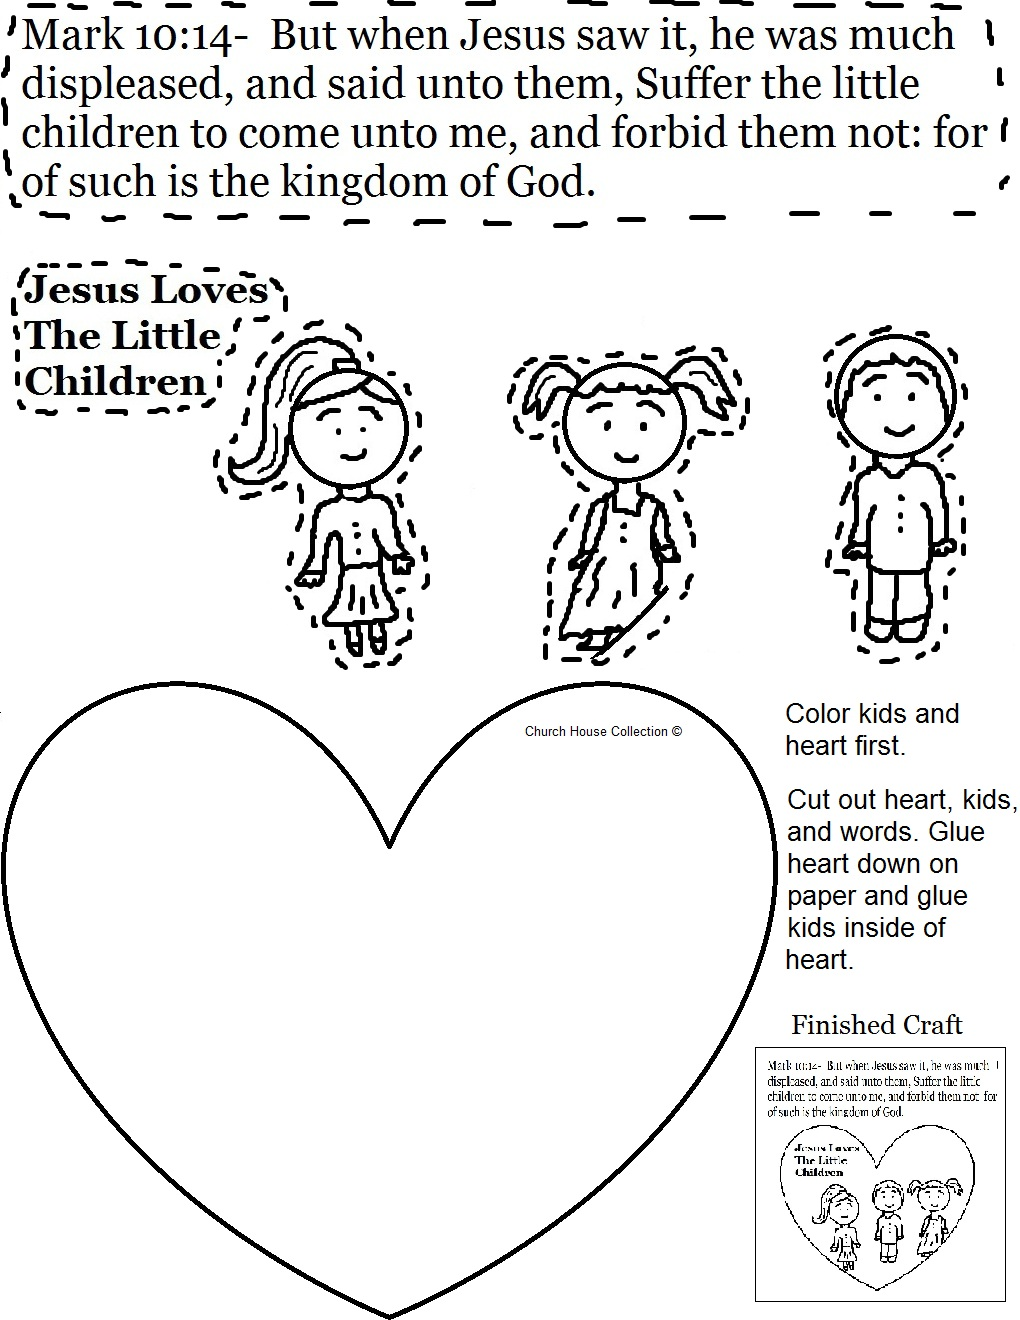 Coloring Pages Jesus And The Children Coloring Pages jesus loves children sunday school lesson the little activity sheet